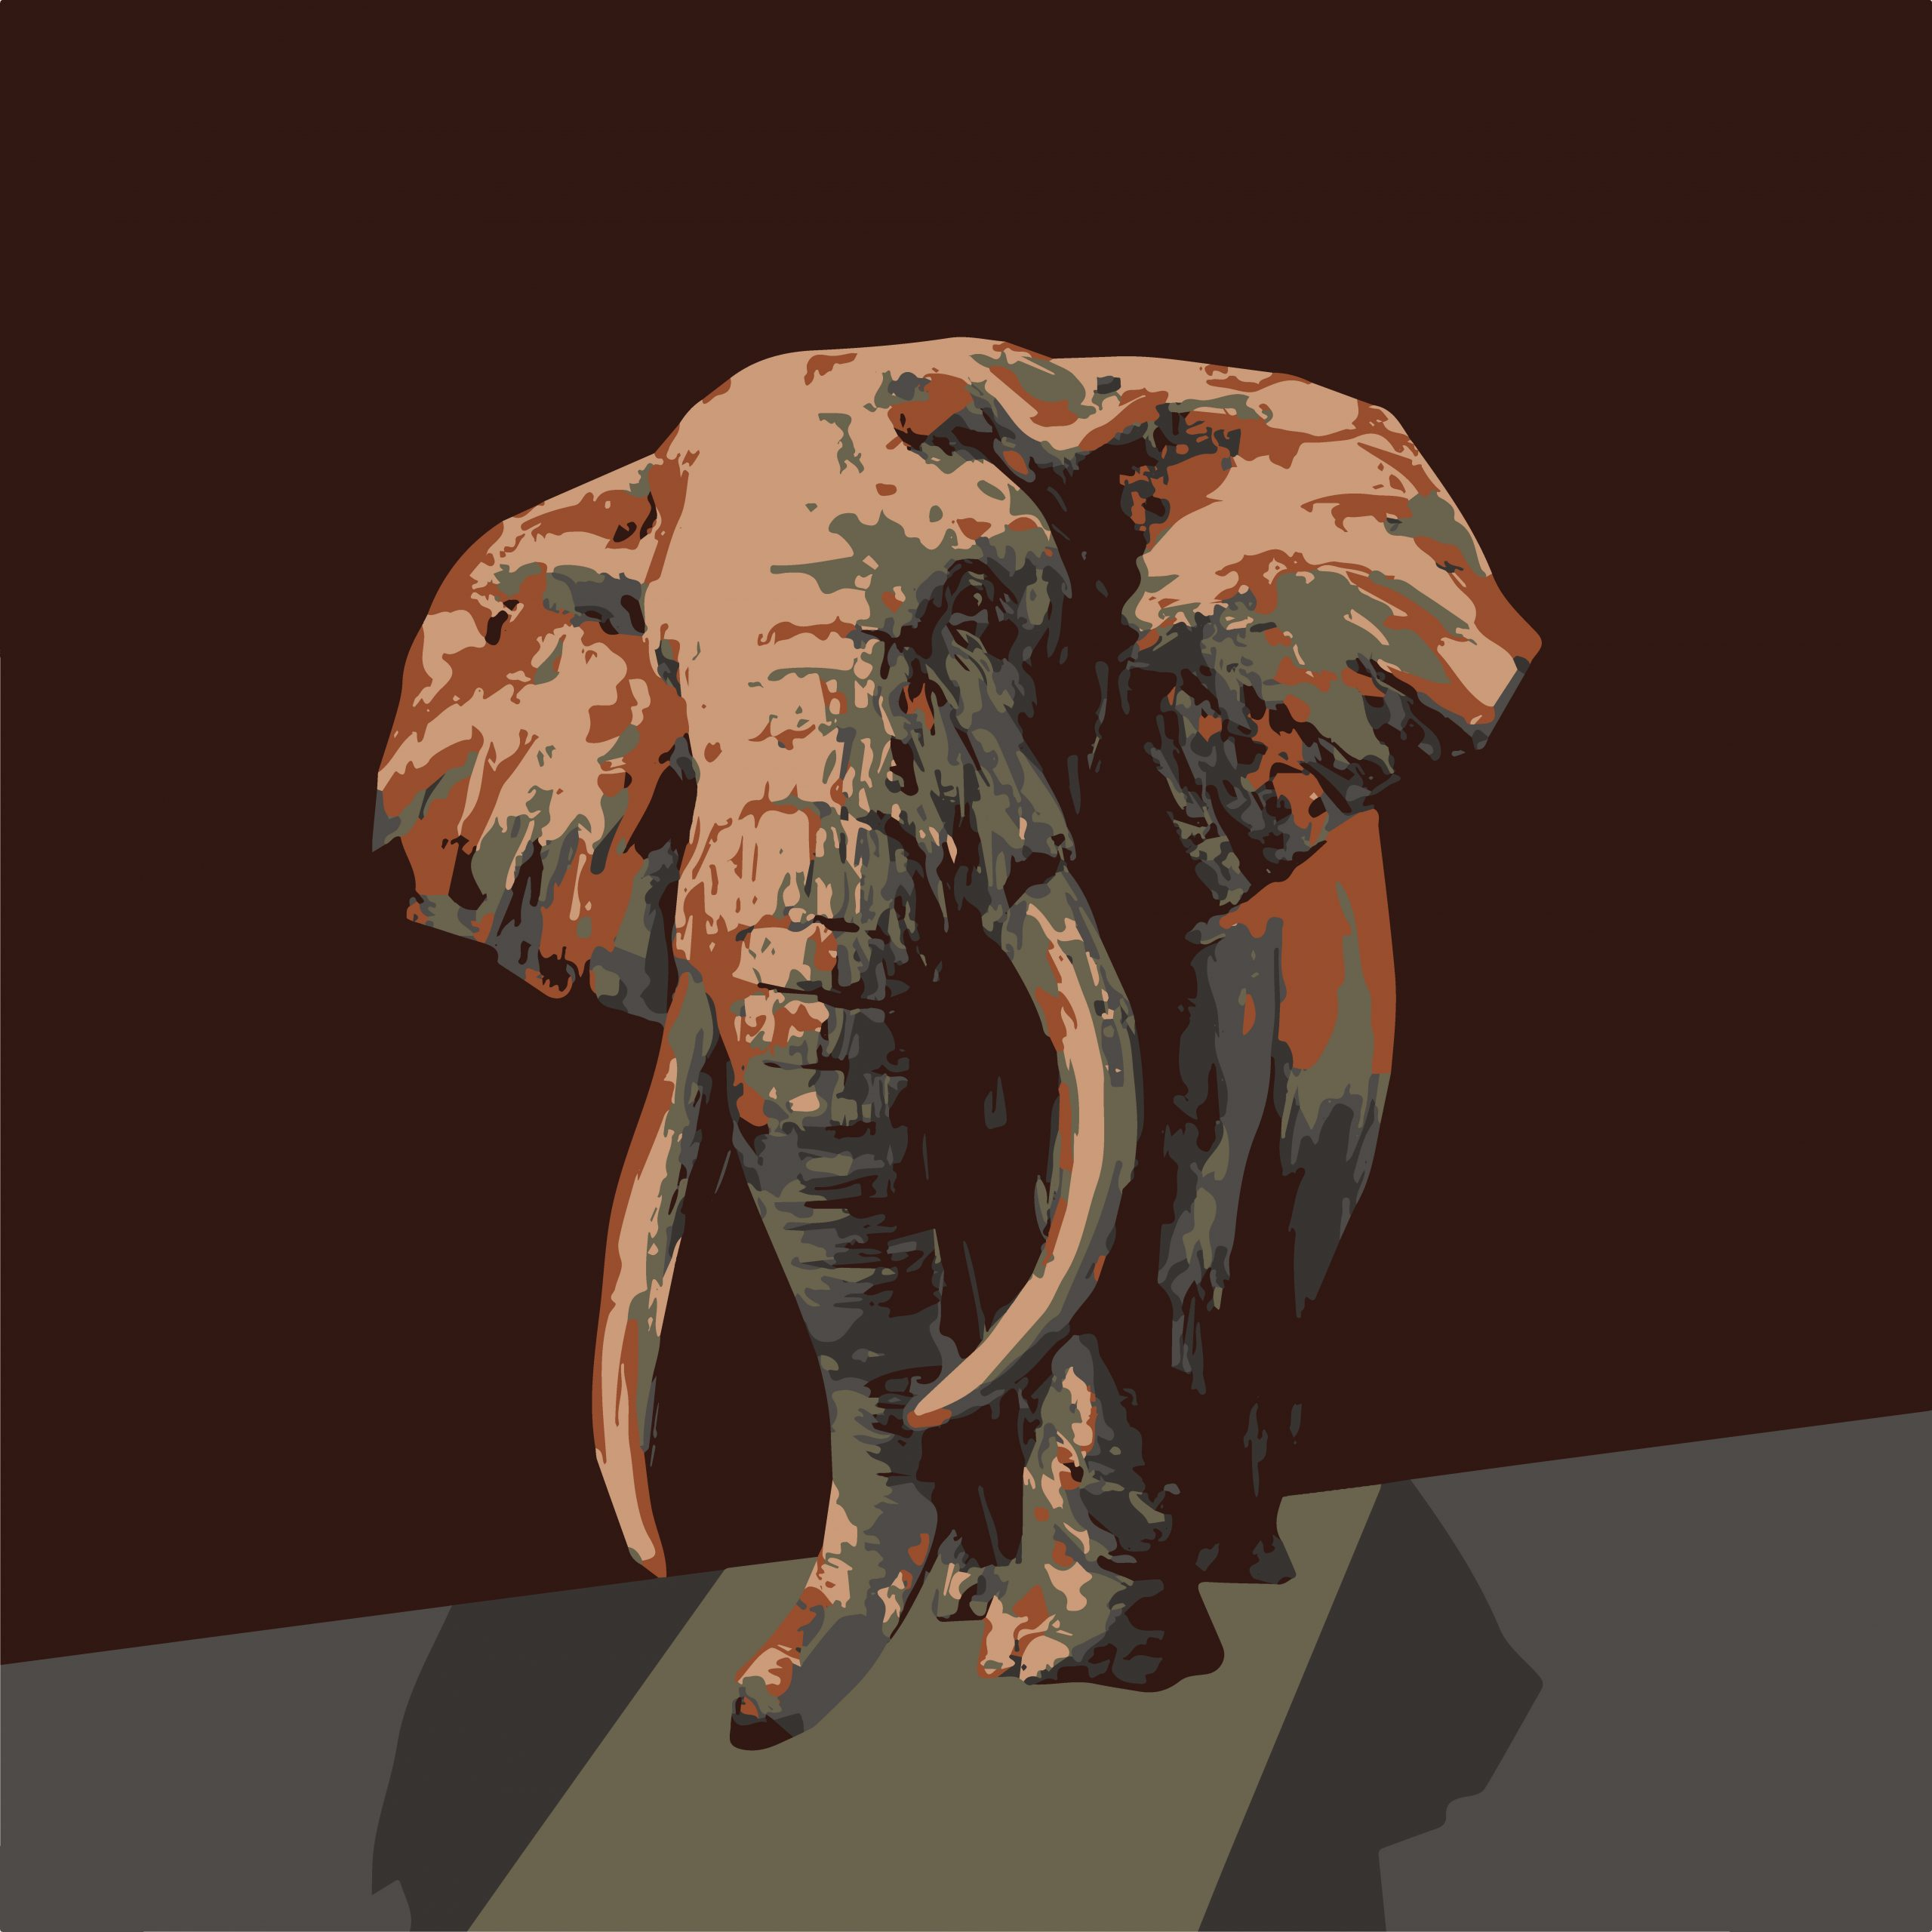 An elephant illustration